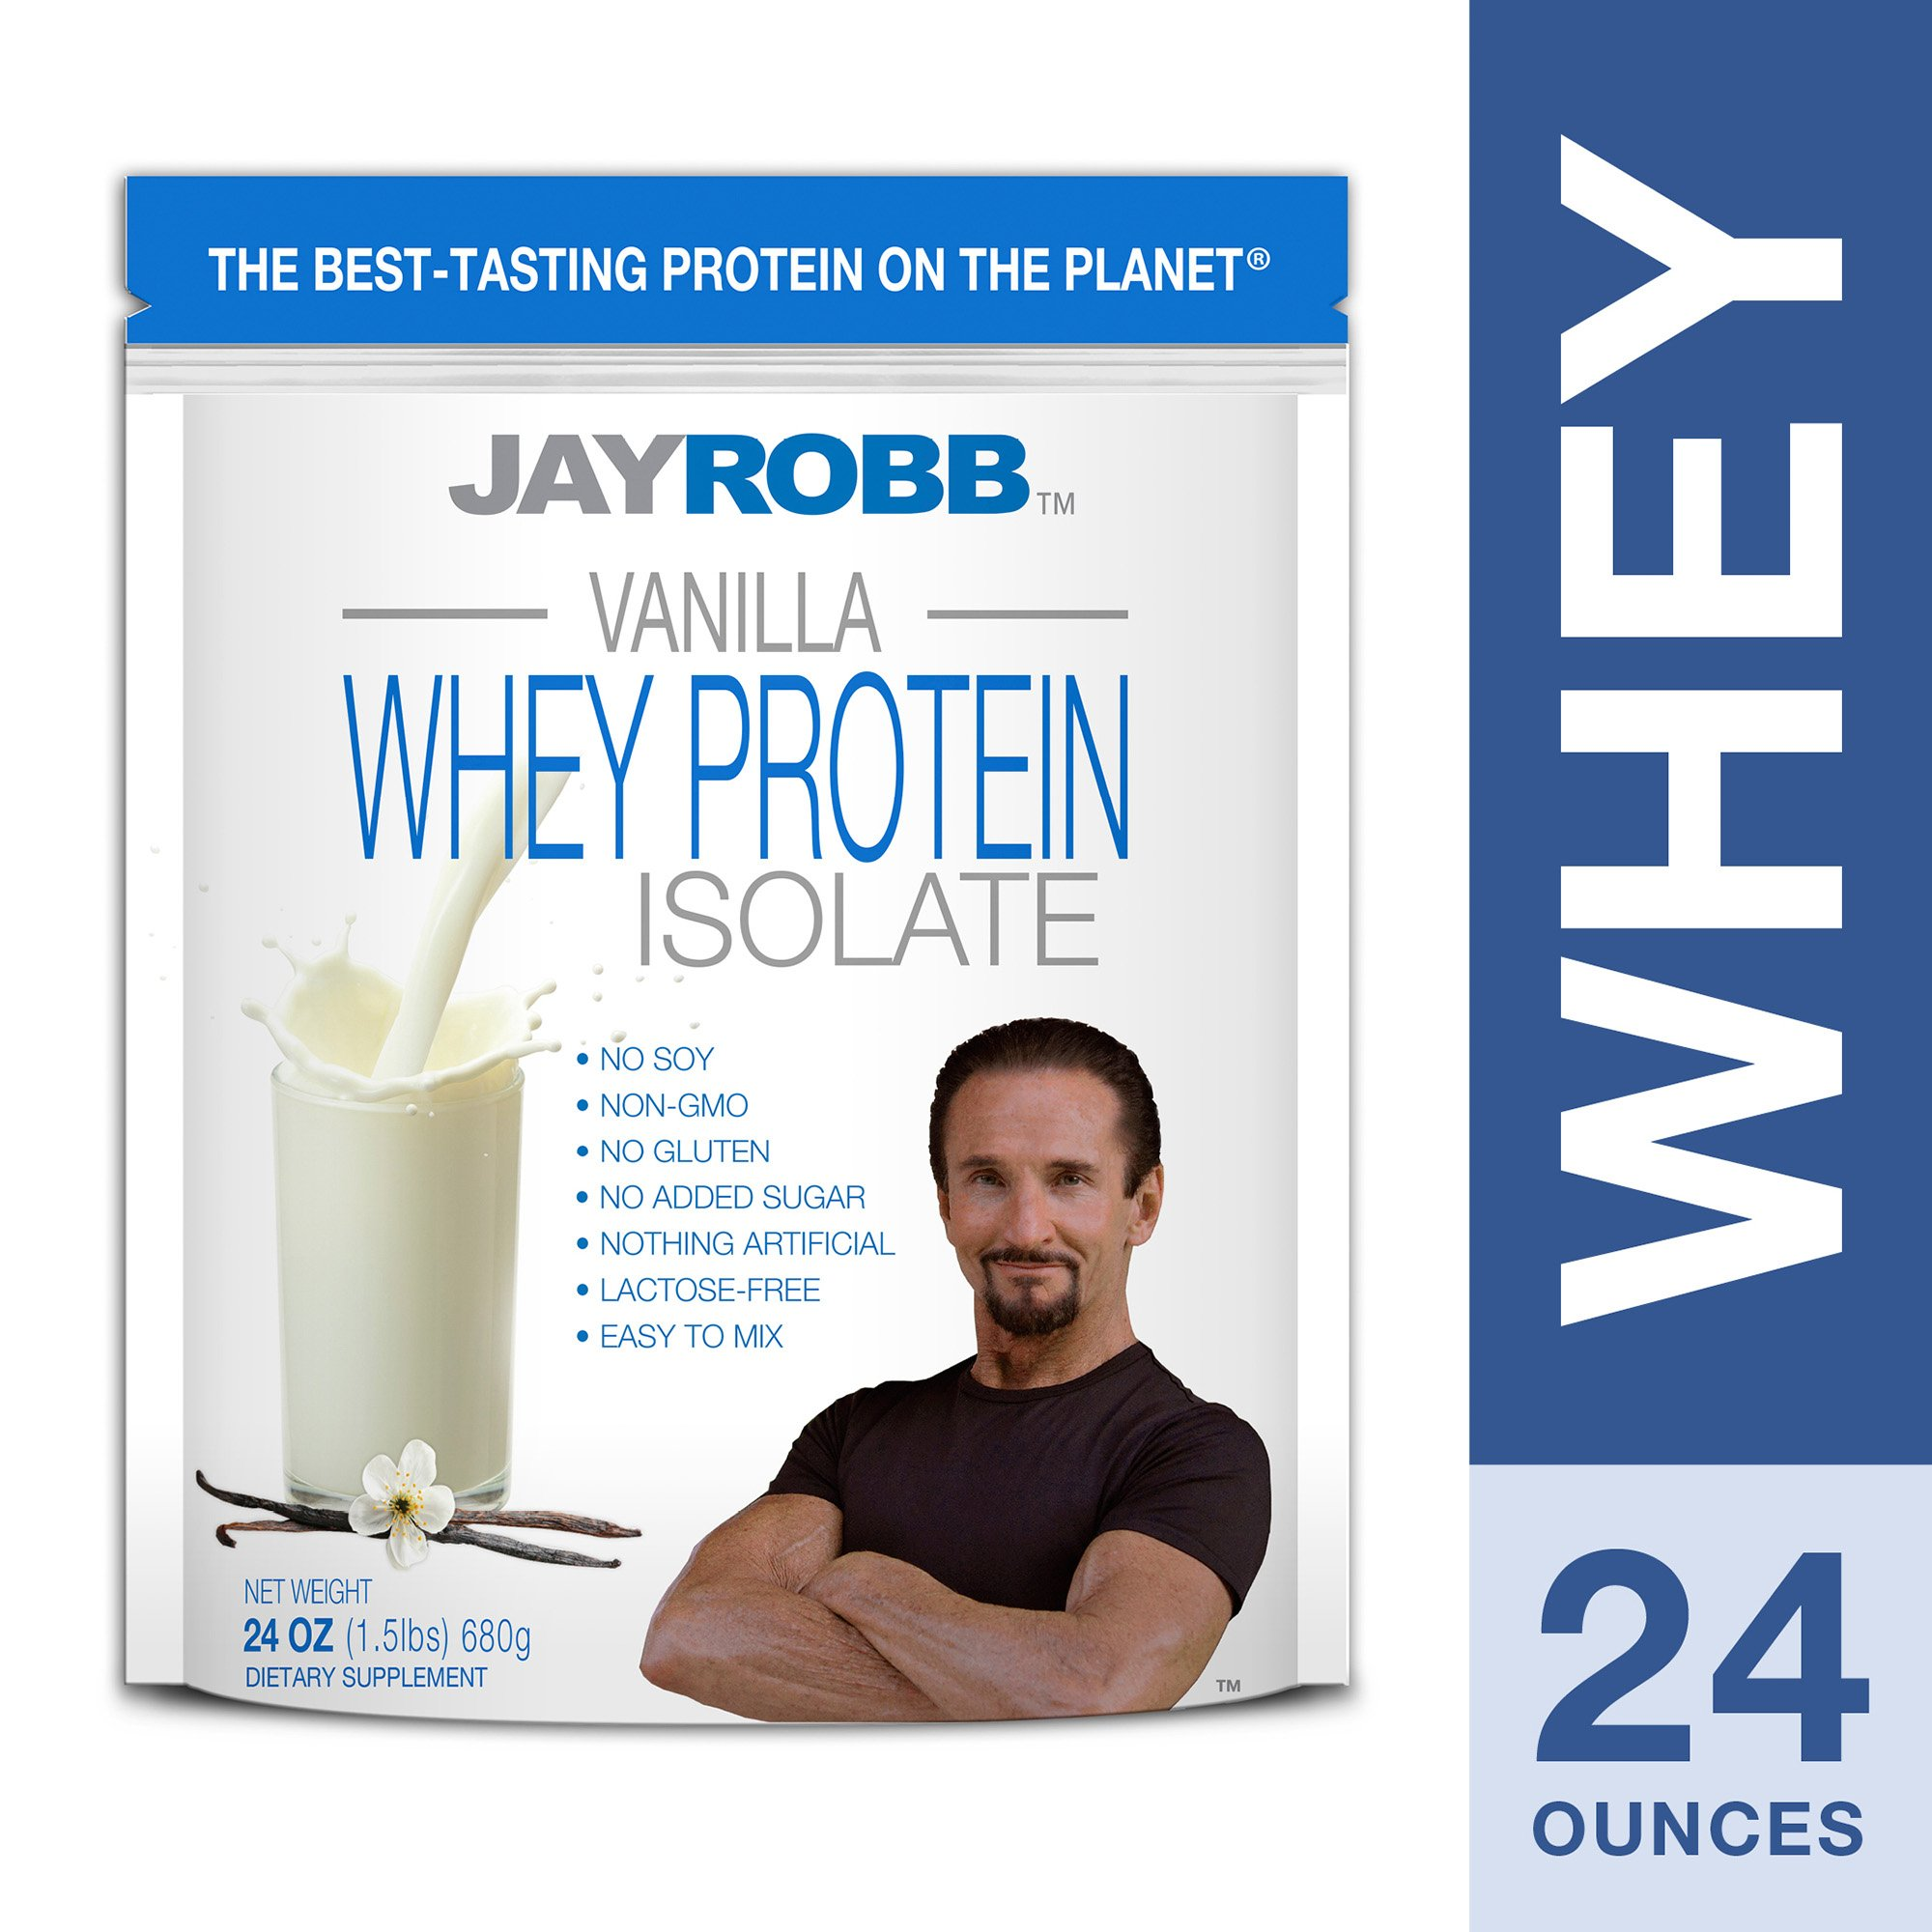 Jay Robb - Grass-Fed Whey Protein Isolate Powder, Outrageously Delicious, Vanilla, 23 Servings (24 oz) by Jay Robb